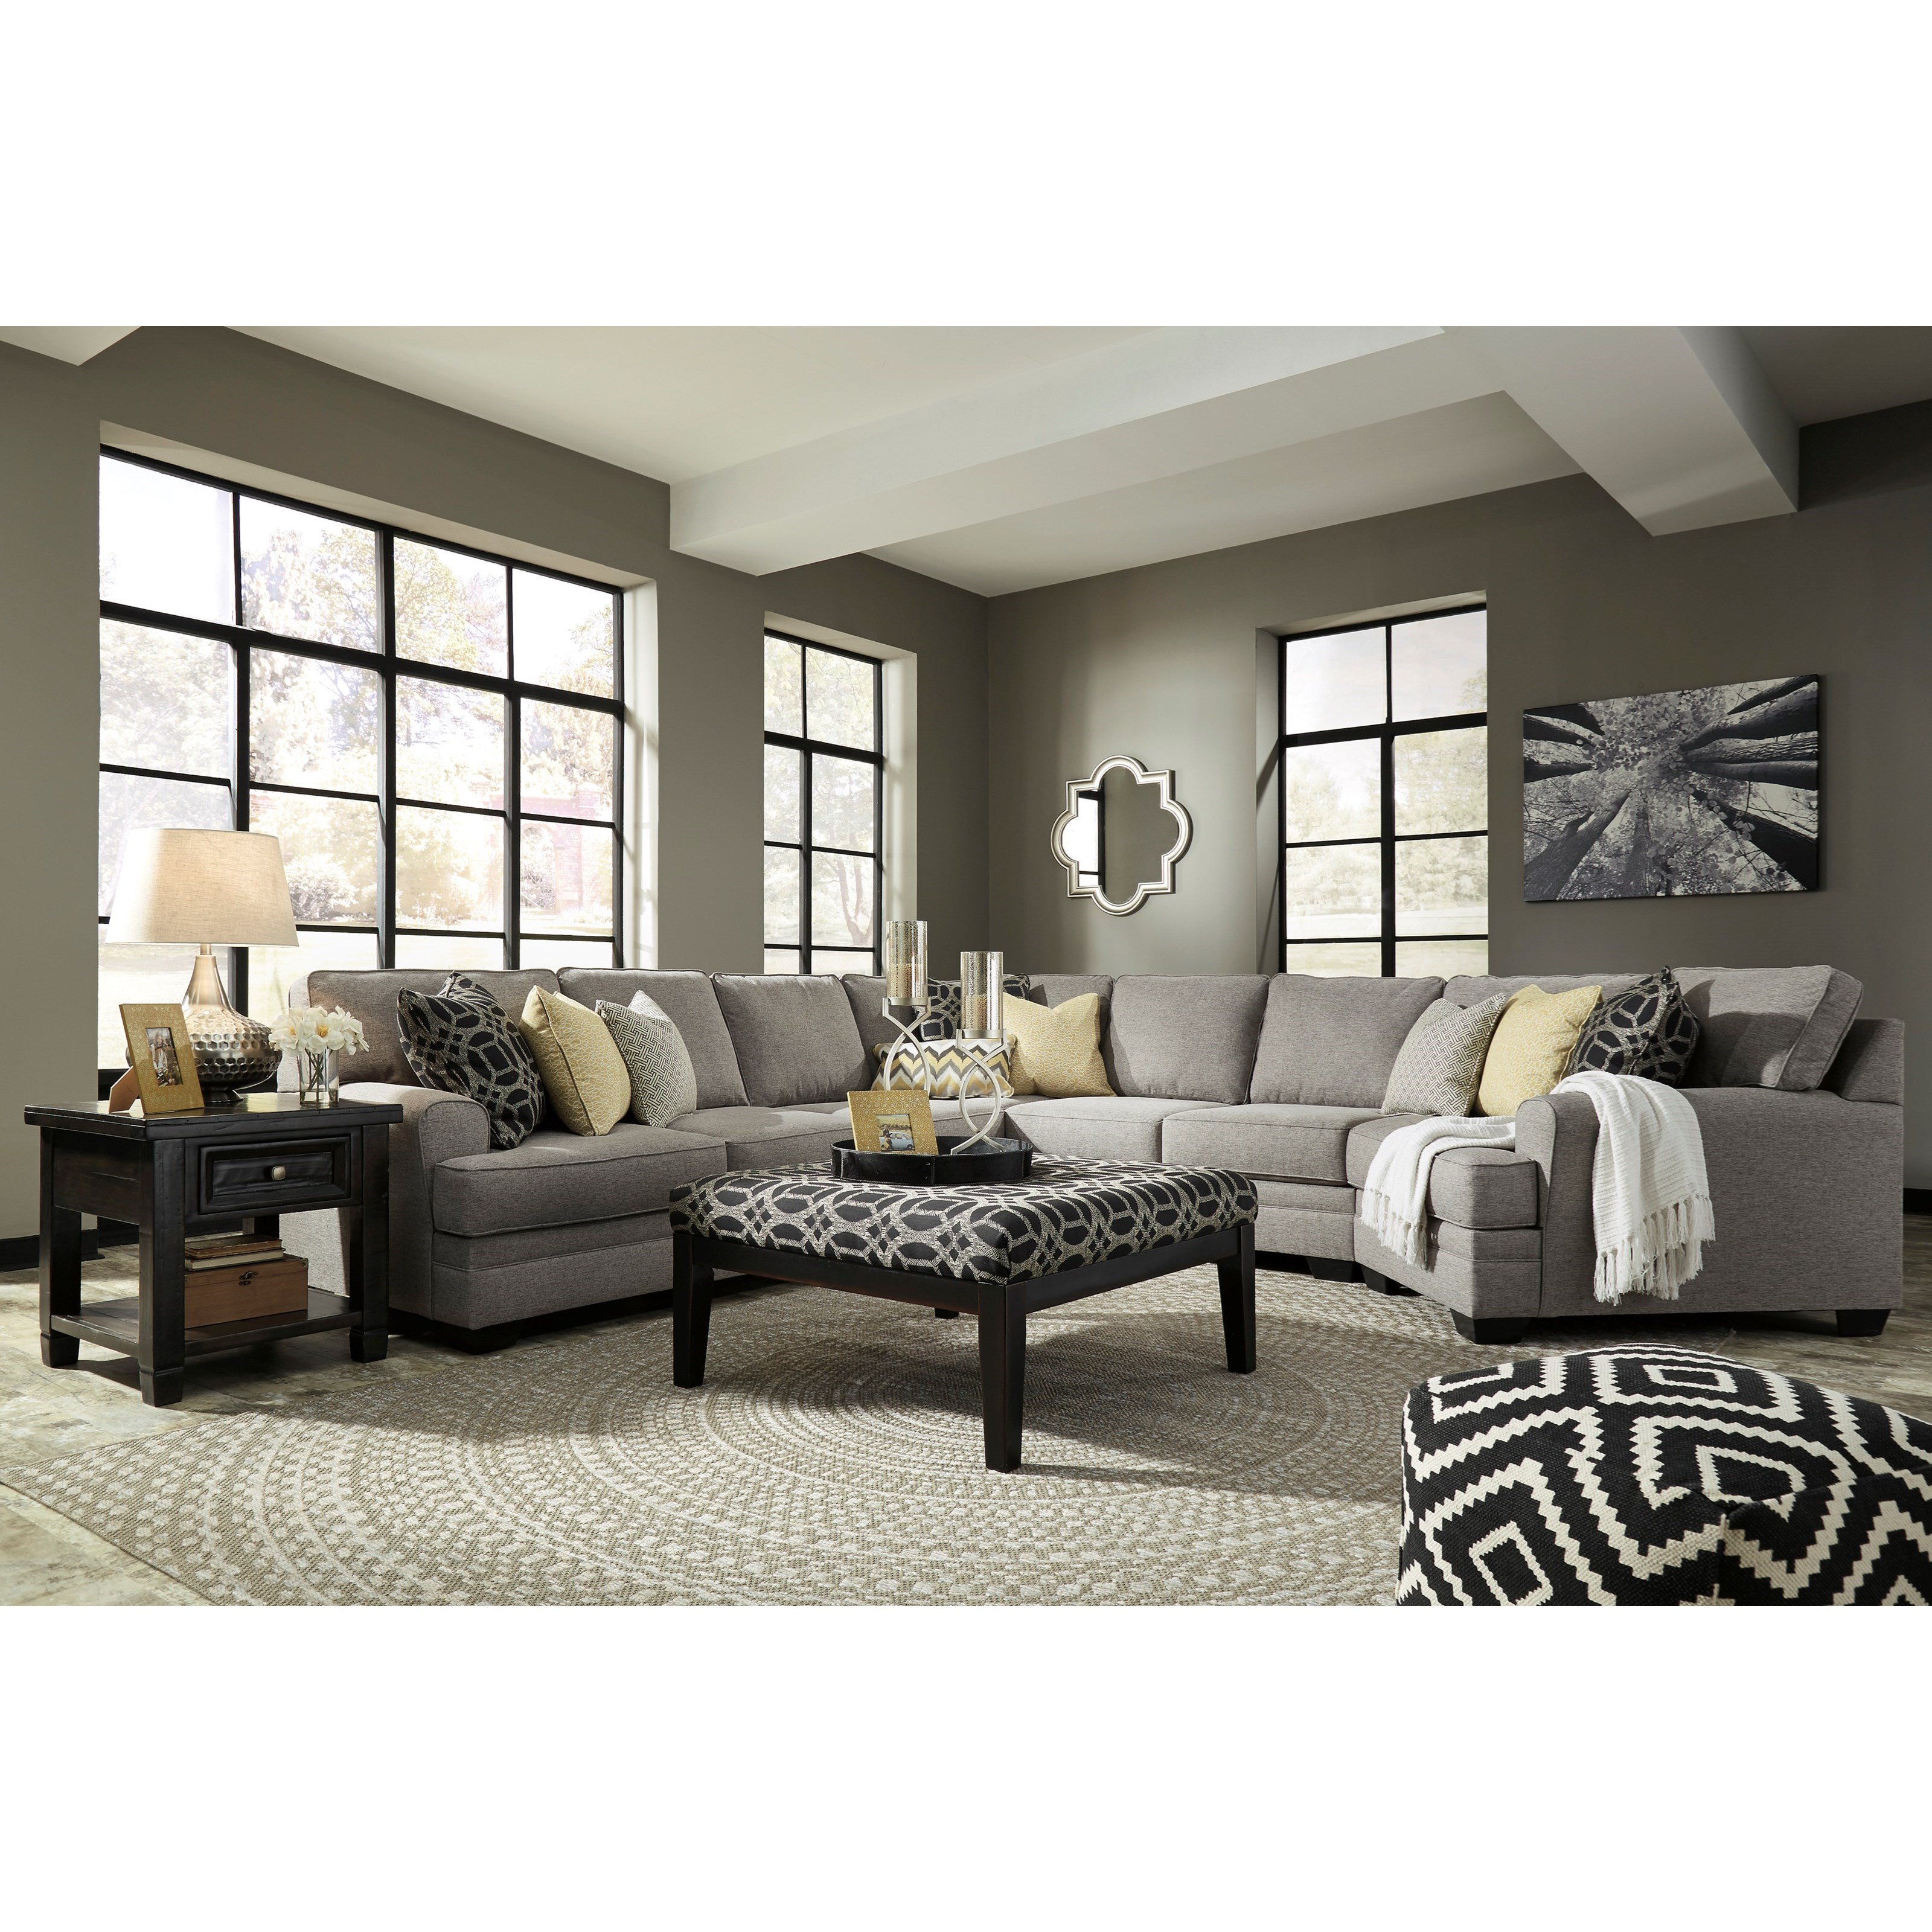 Benchcraft Cresson Contemporary 5 Piece Sectional With Cuddler Dunk Bright Furniture